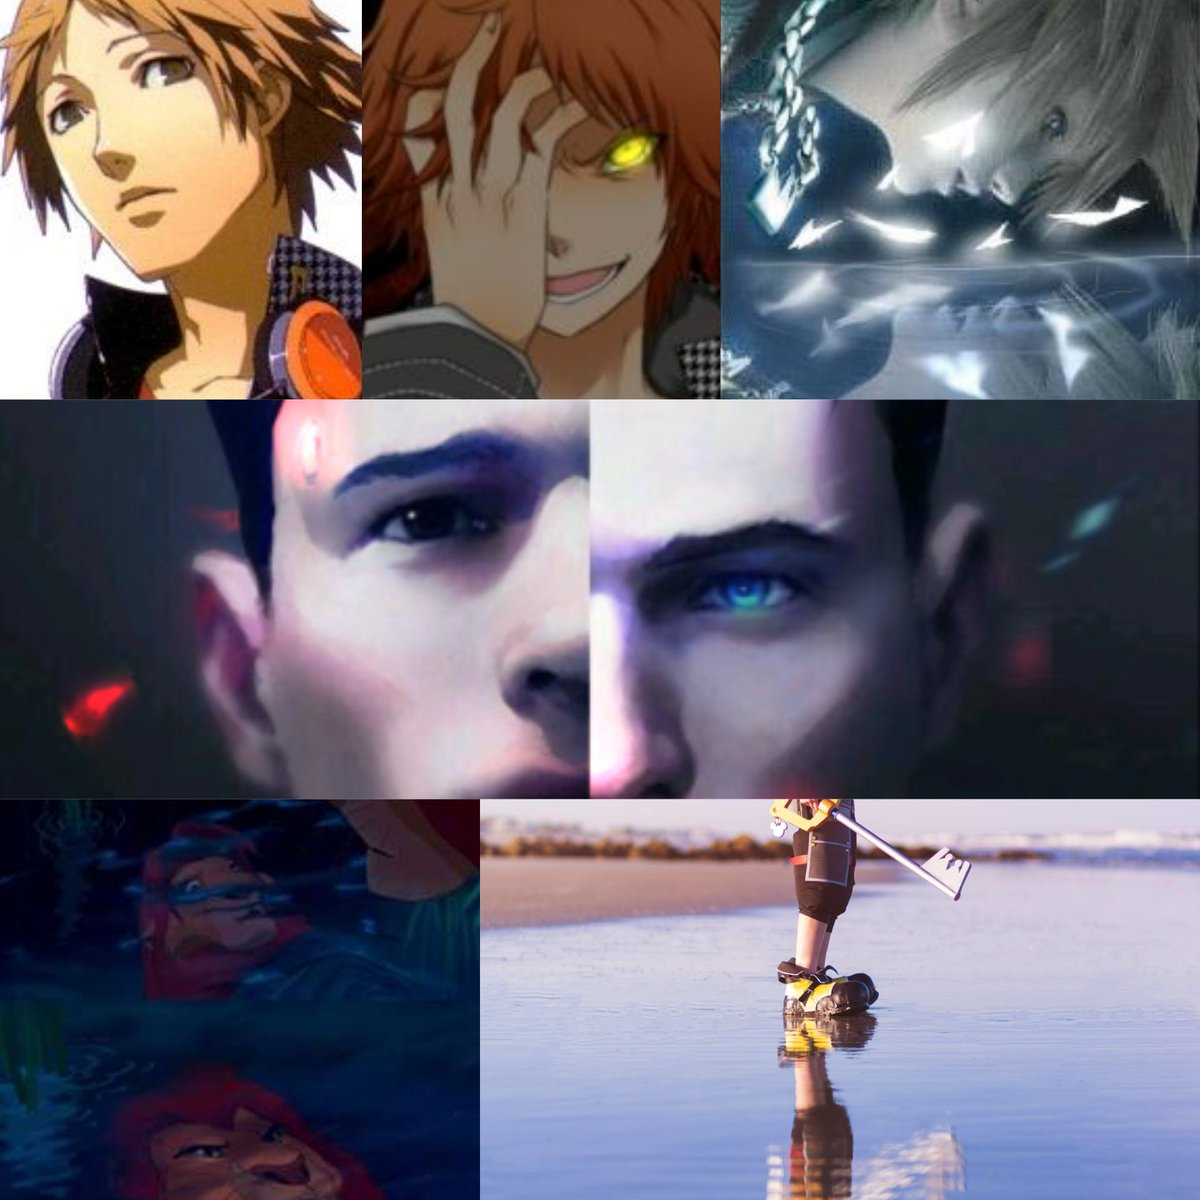 August Art Prompt Day 3: Reflection  No one is able to look upon their own reflection without finding some flaw, but having flaws is something that we ALL have in common, no matter who you are, it's what makes us human.  #DechartGames #ConnorArmy @BryanDechart @AmeliaRBlairepic.twitter.com/ev9g1QMHZL